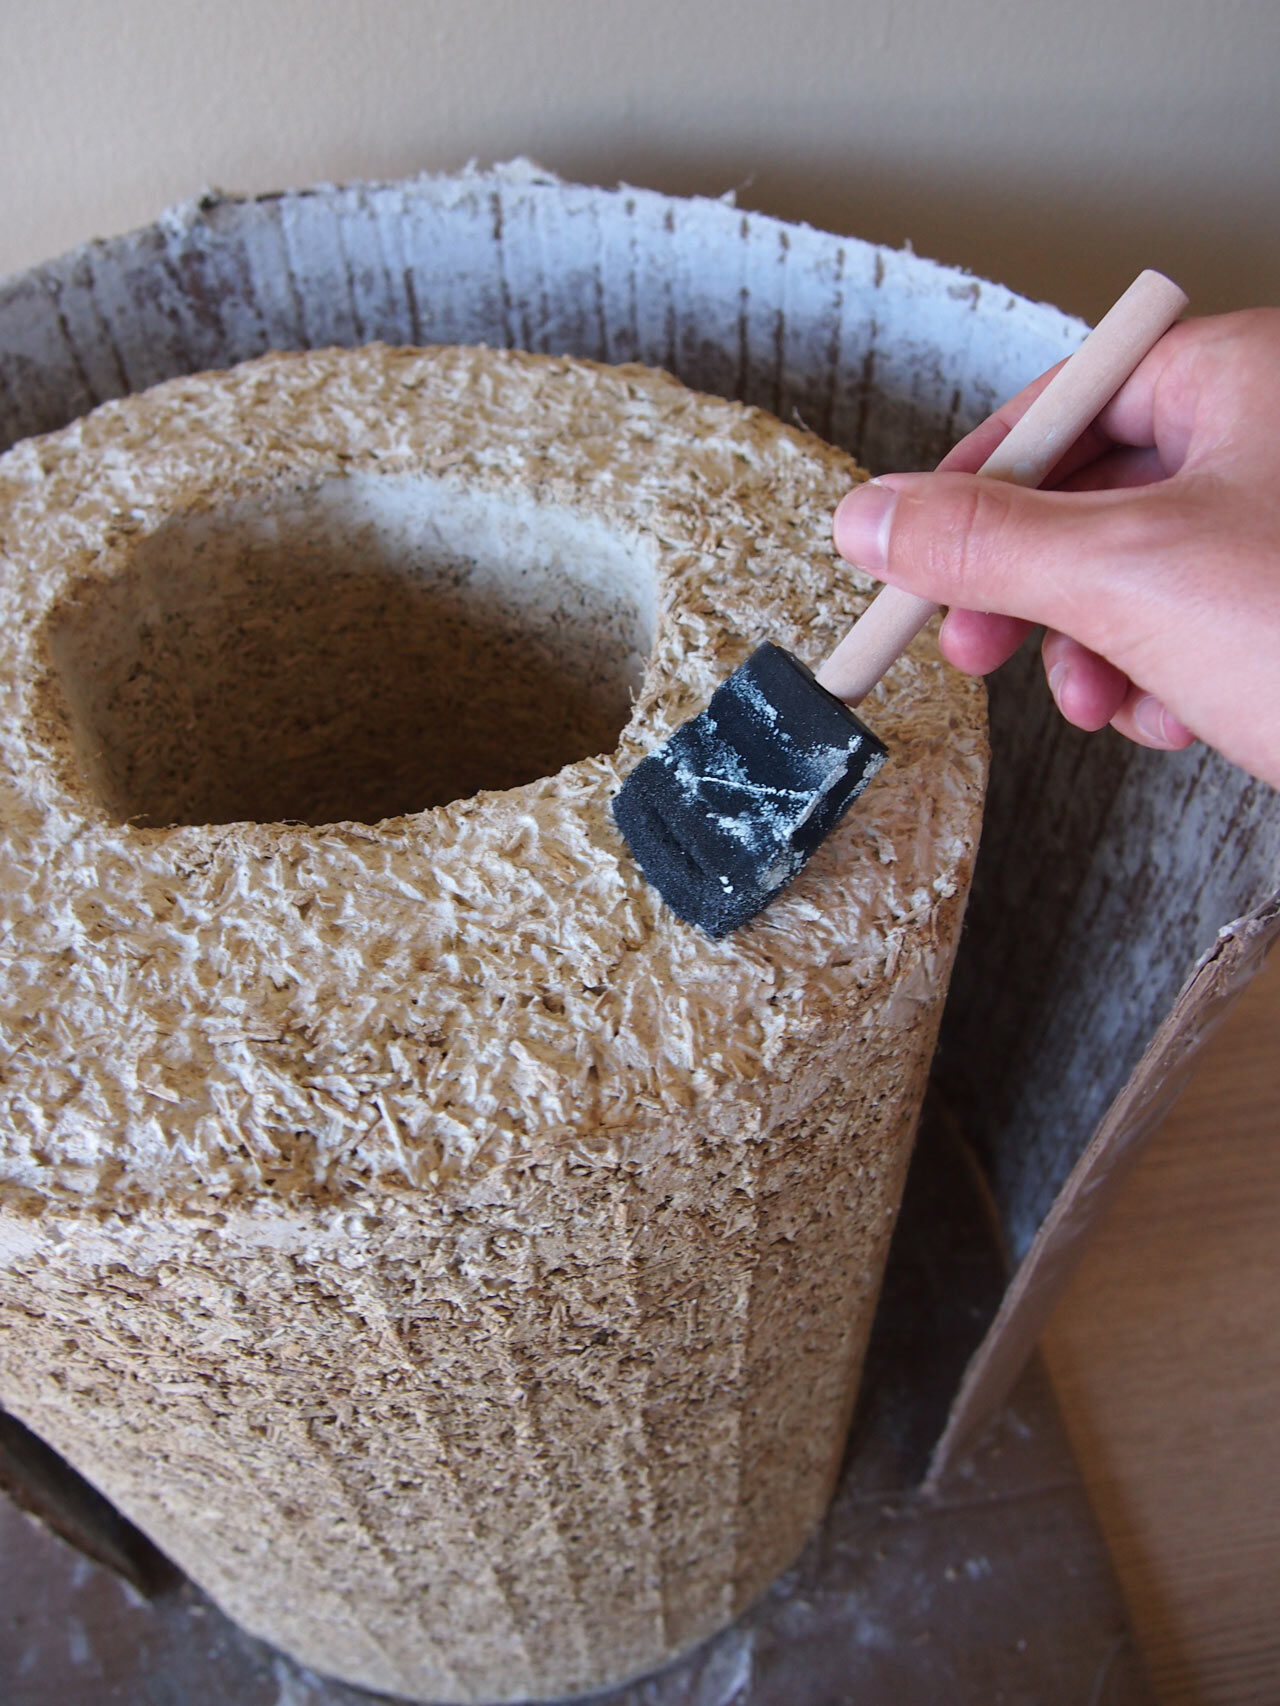 13   Boil some water in a saucepan and mix in some all purpose flour, making a thin papier-mâché paste. Wait for the mix to cool, and brush it all over the stool. It should dry clear and help keep the hemp from flaking off.